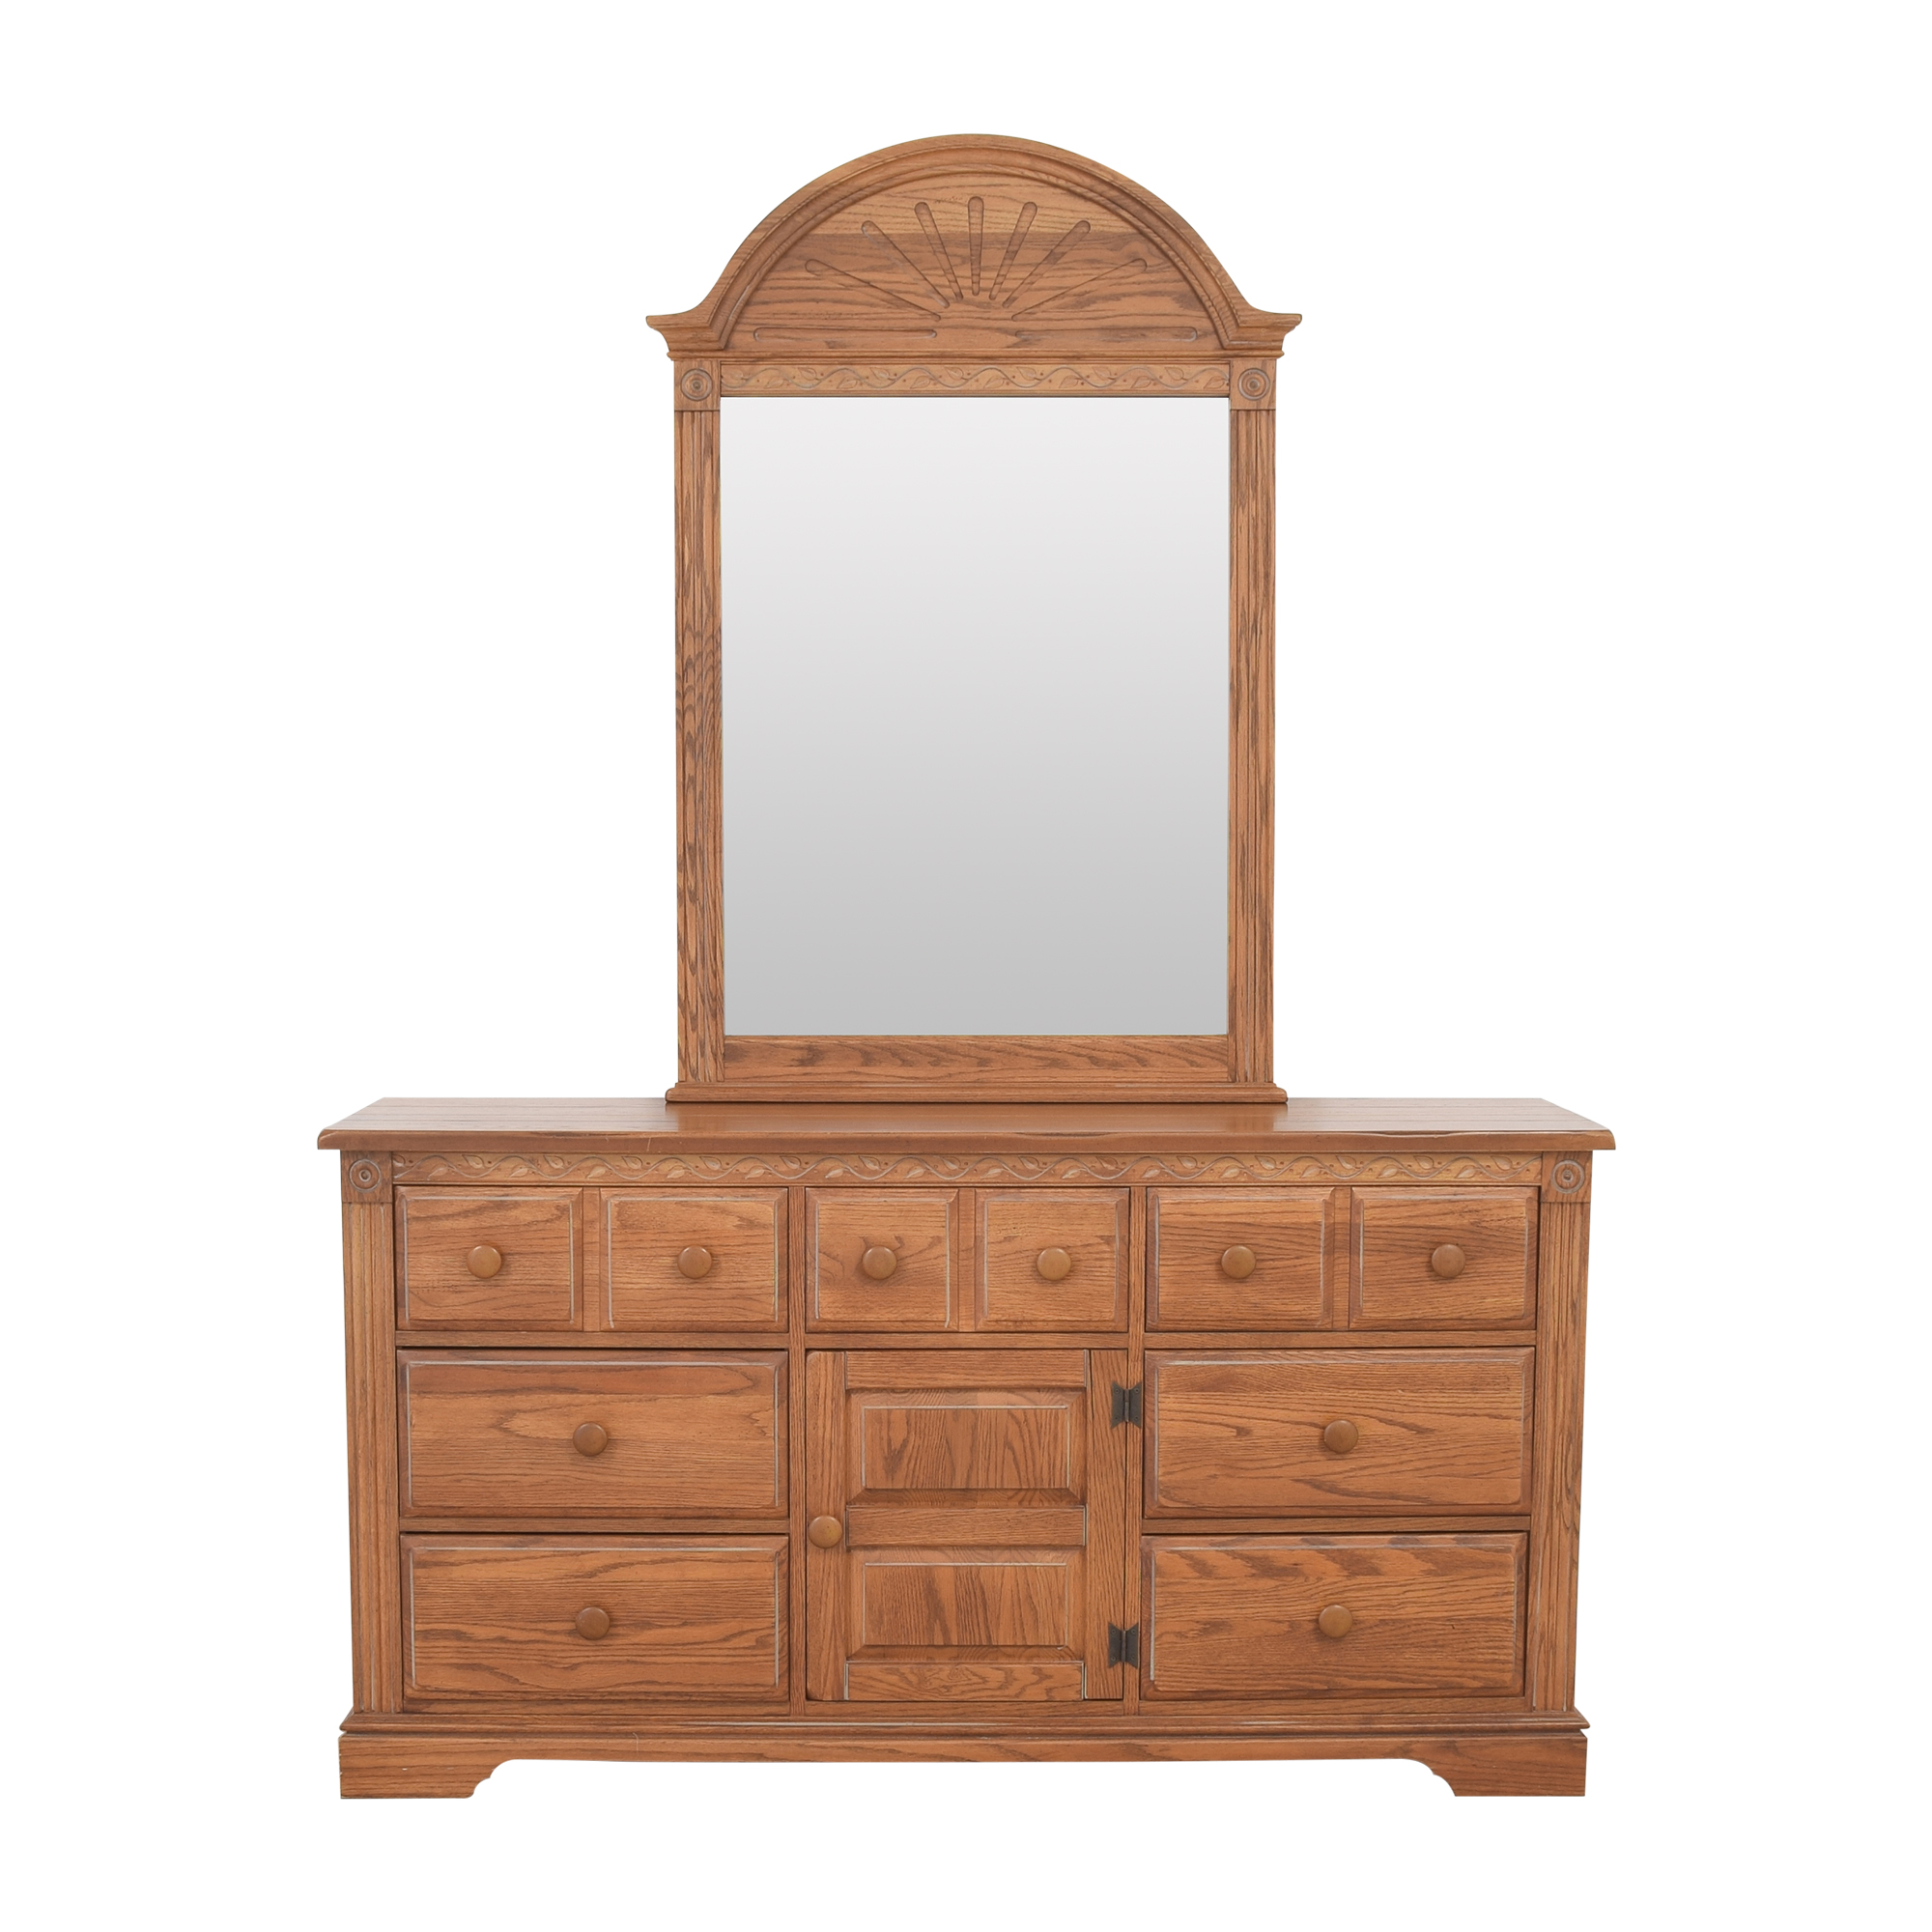 Broyhill Furniture Broyhill Door Dresser with Mirror nyc